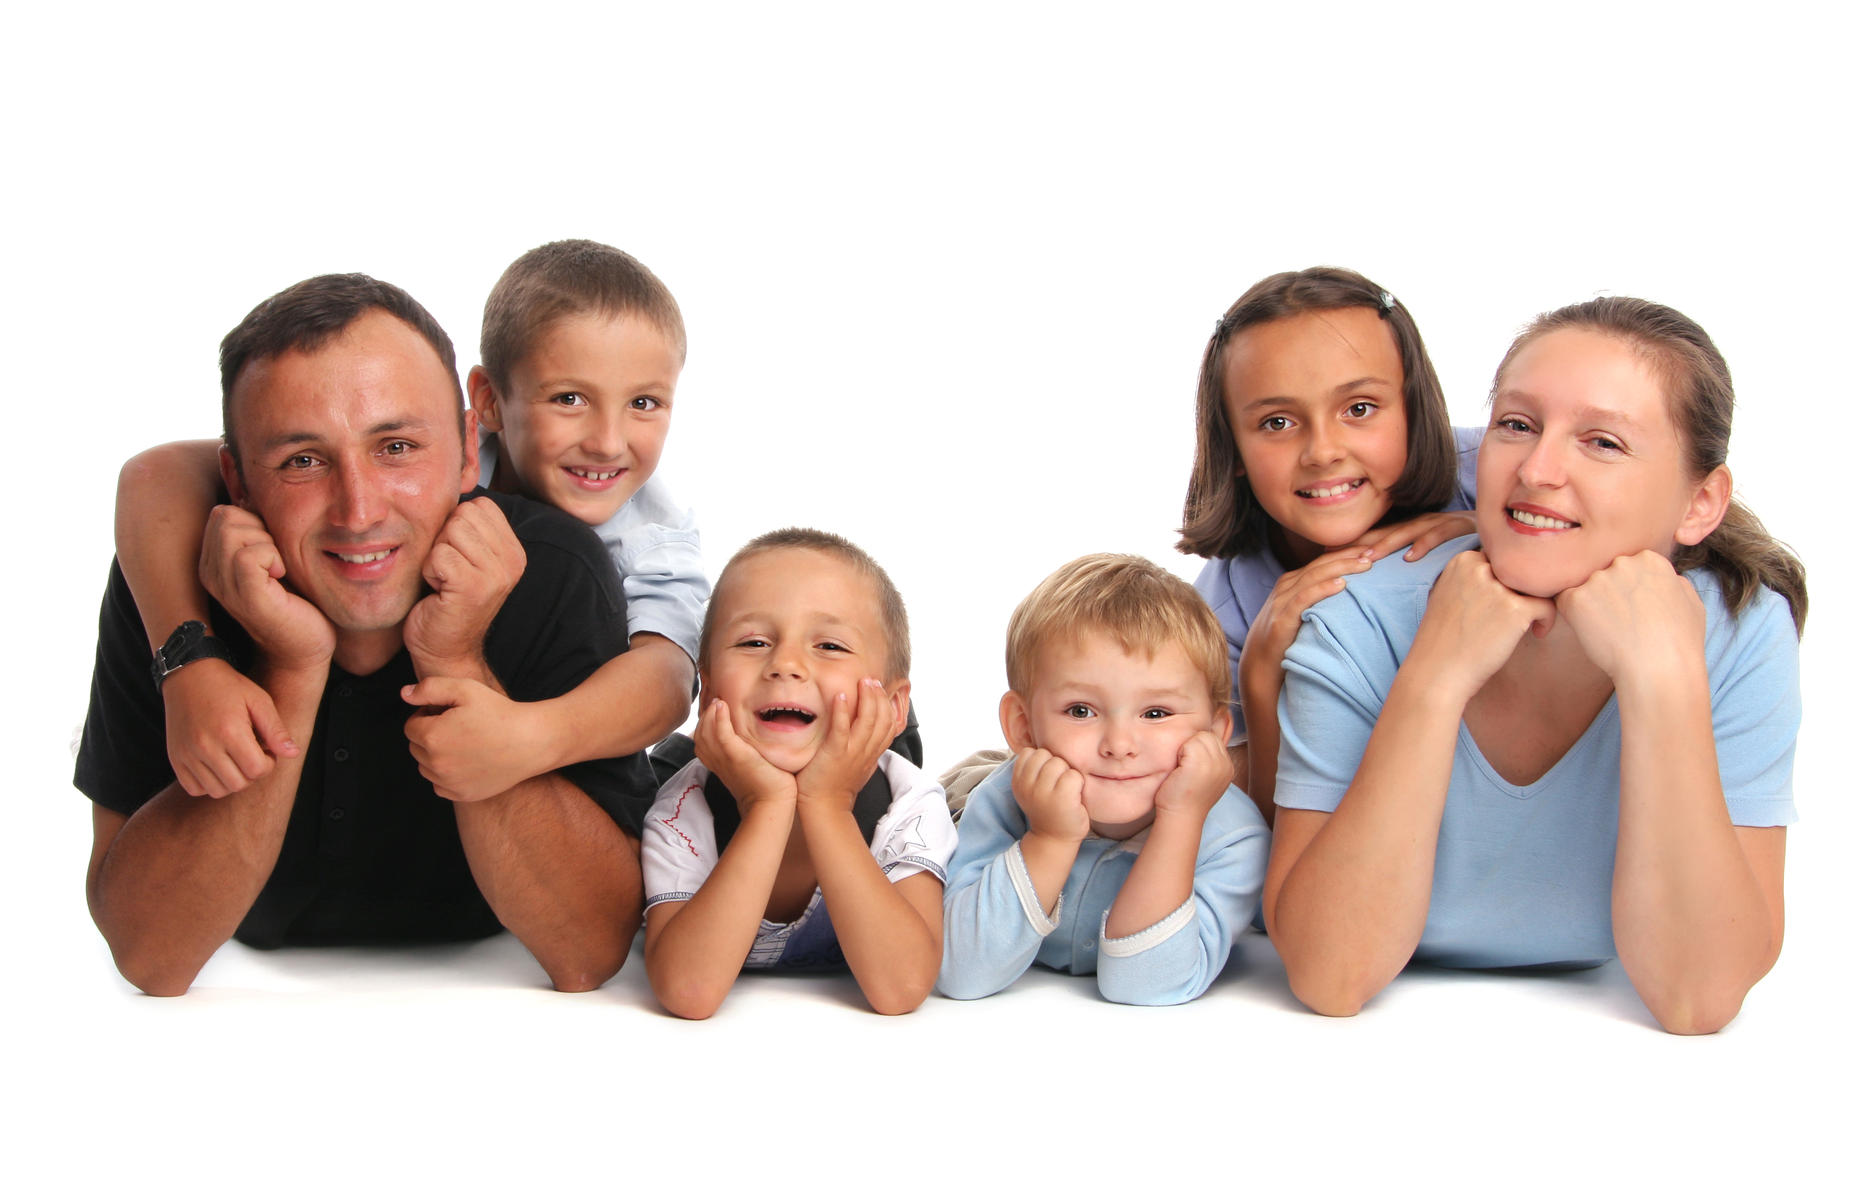 family with four children